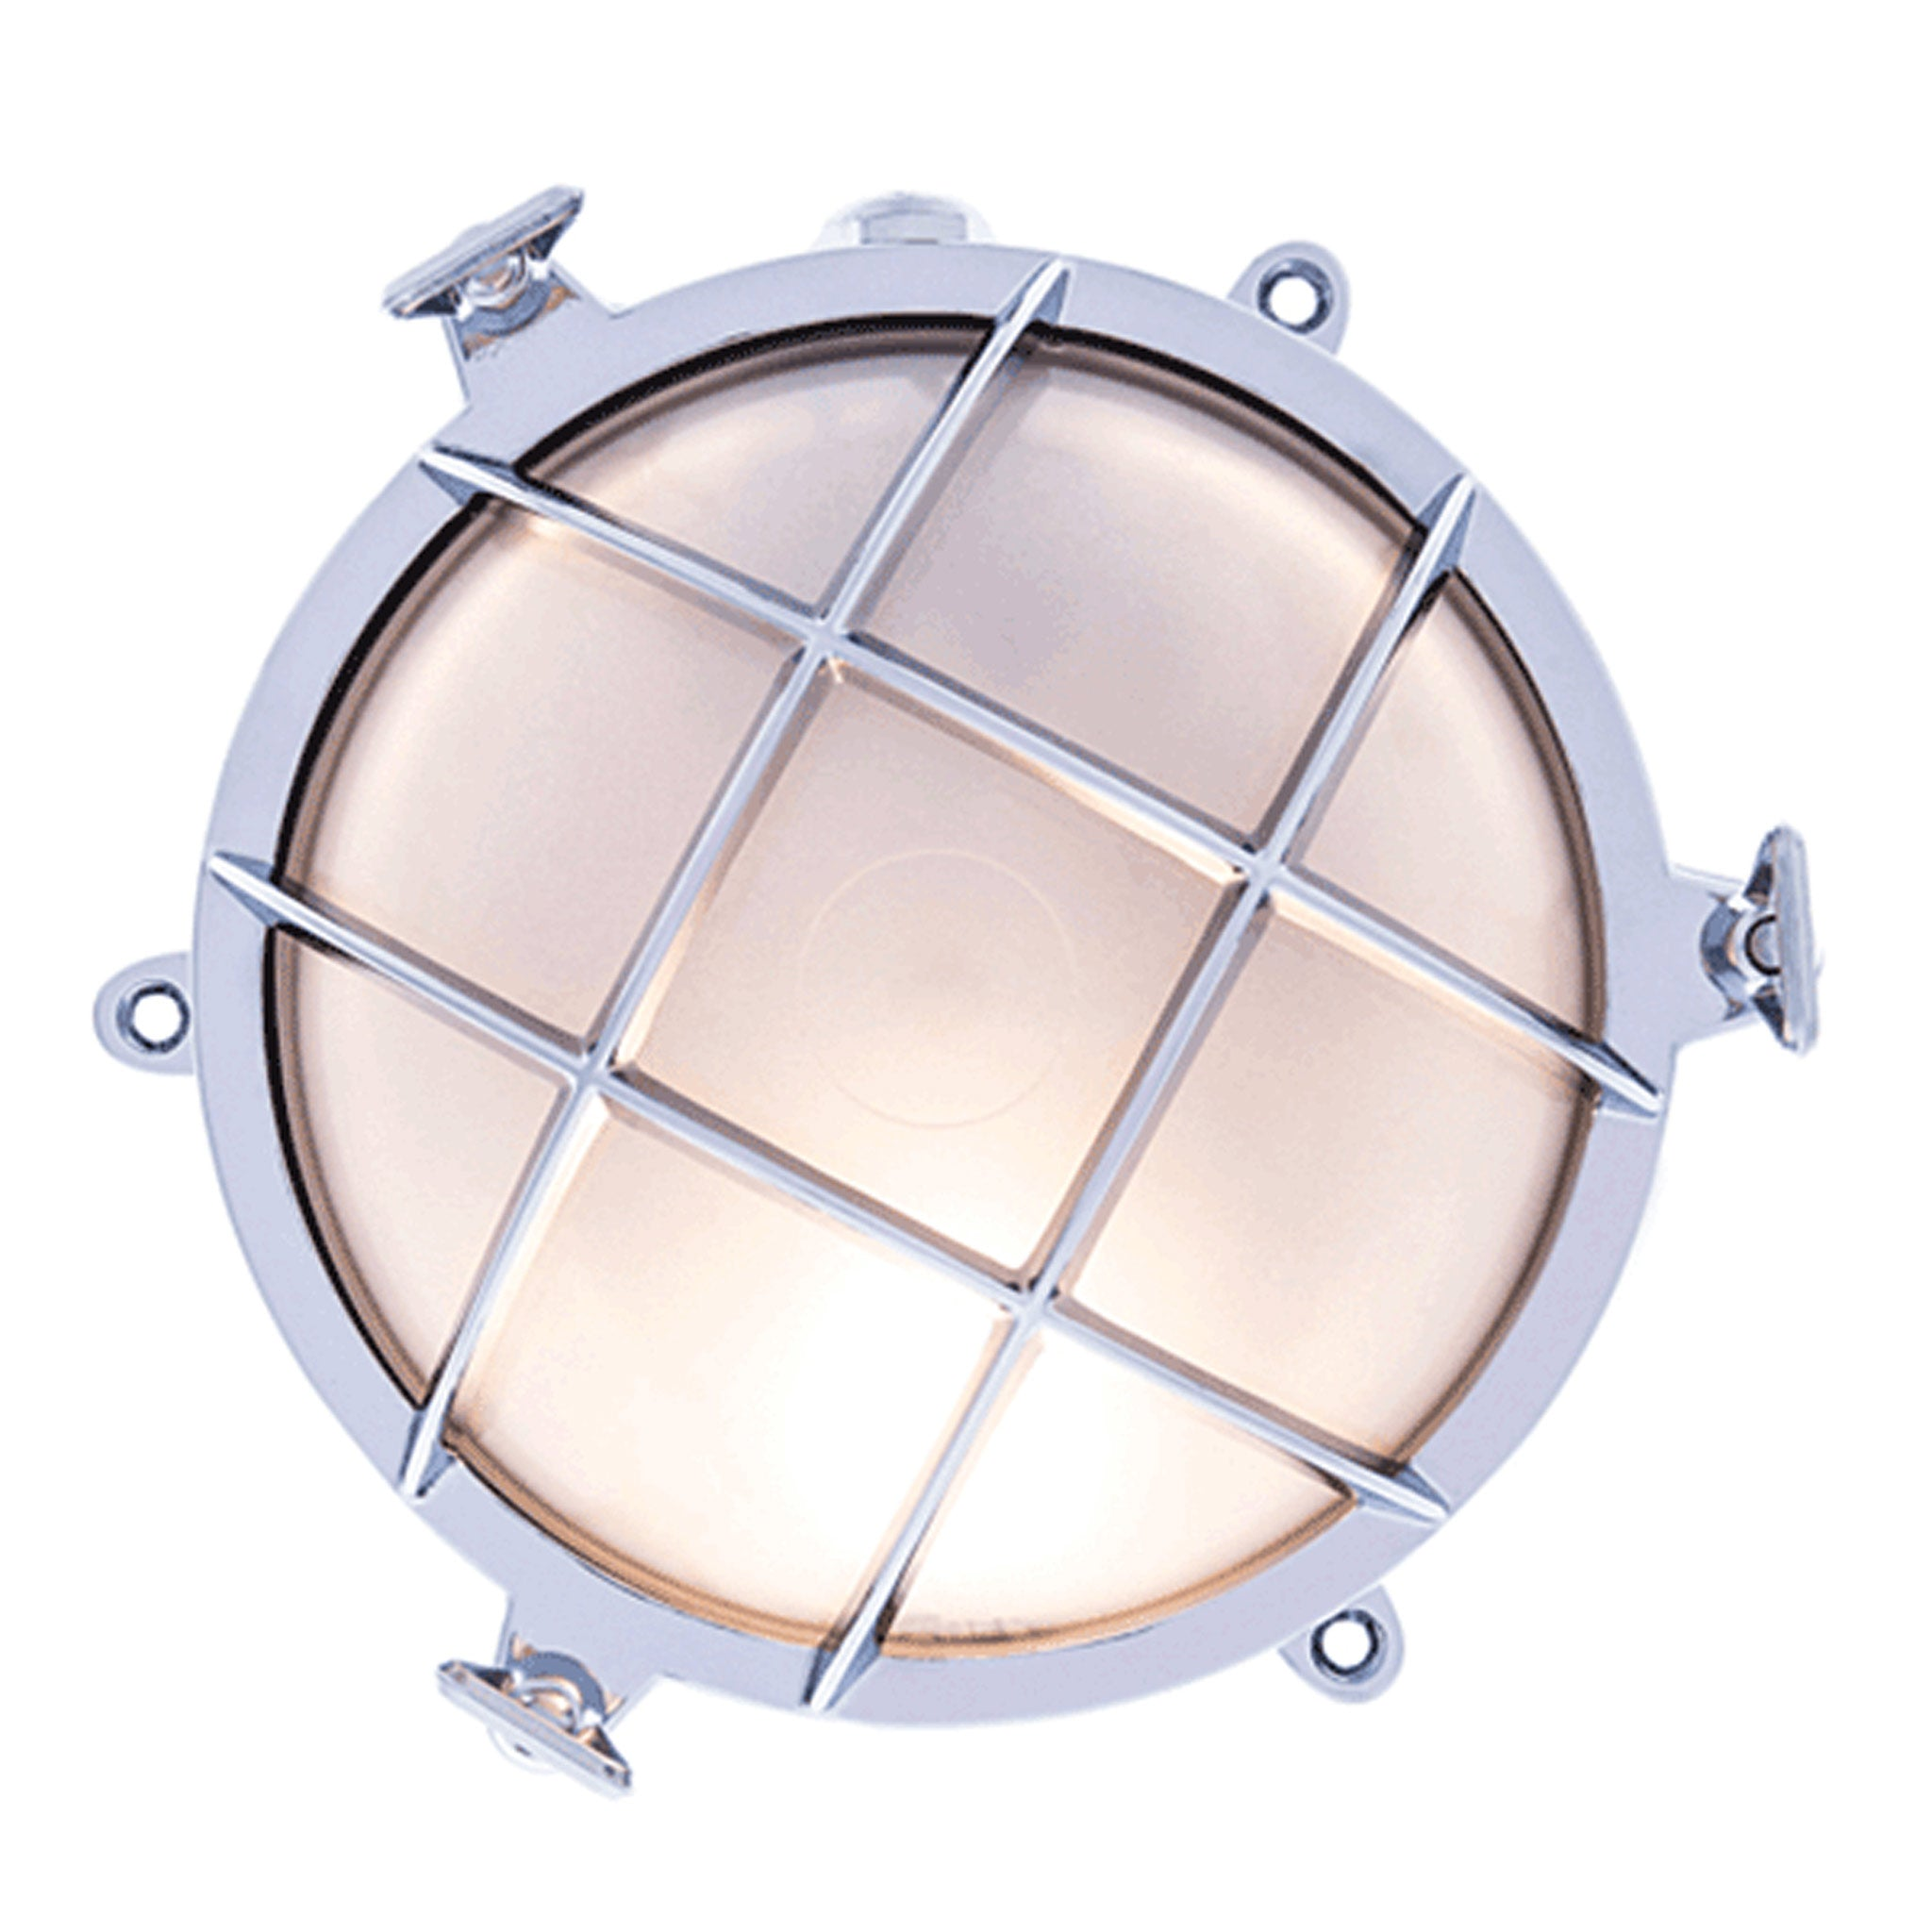 Medium Round Bulkhead Light (With Legs) - 175 mm diameter